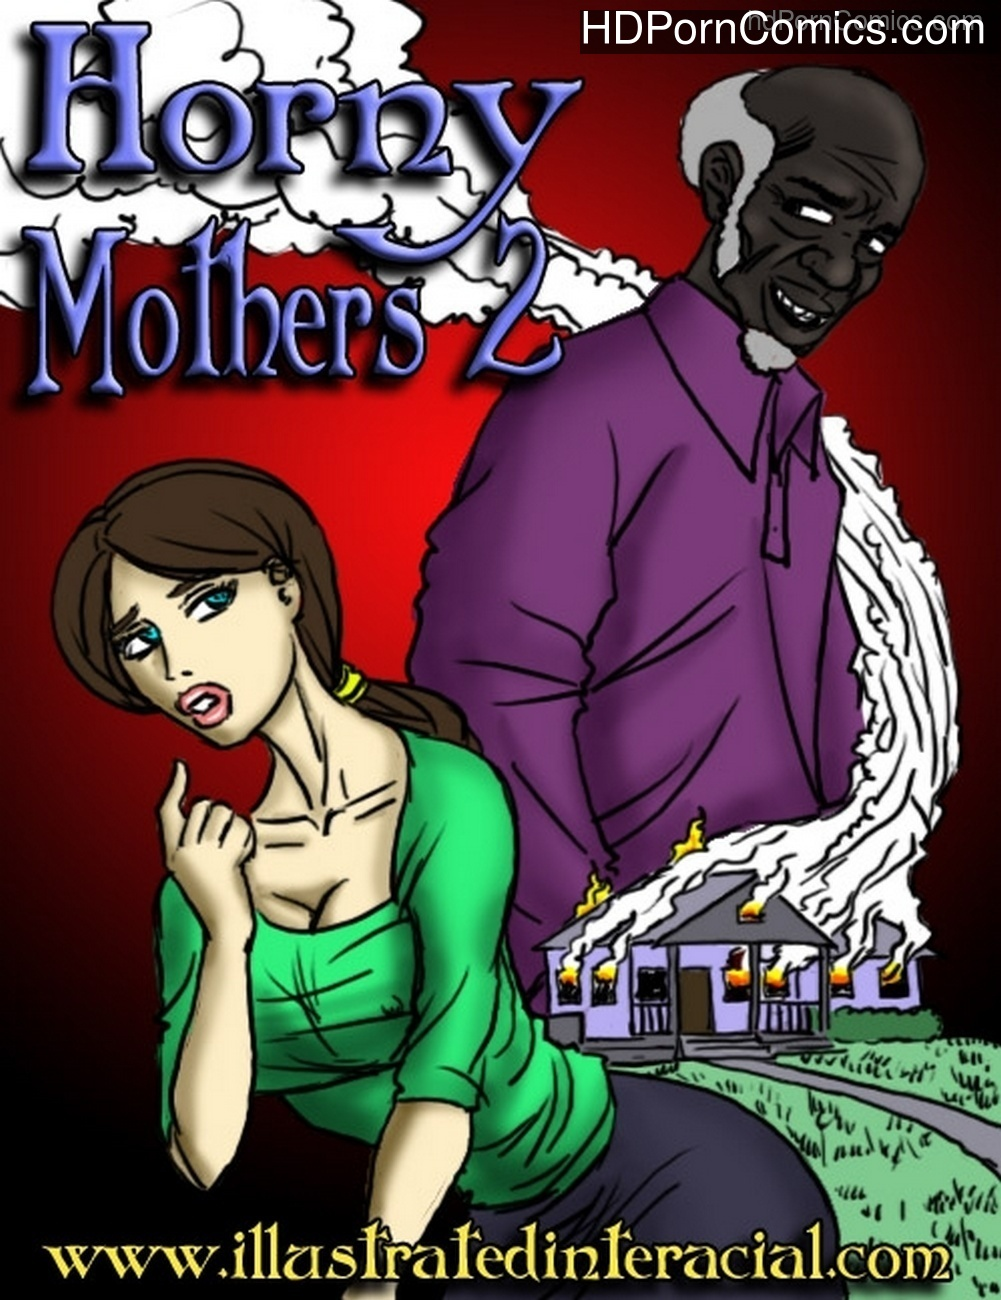 Horny Mothers 2 Sex Comic